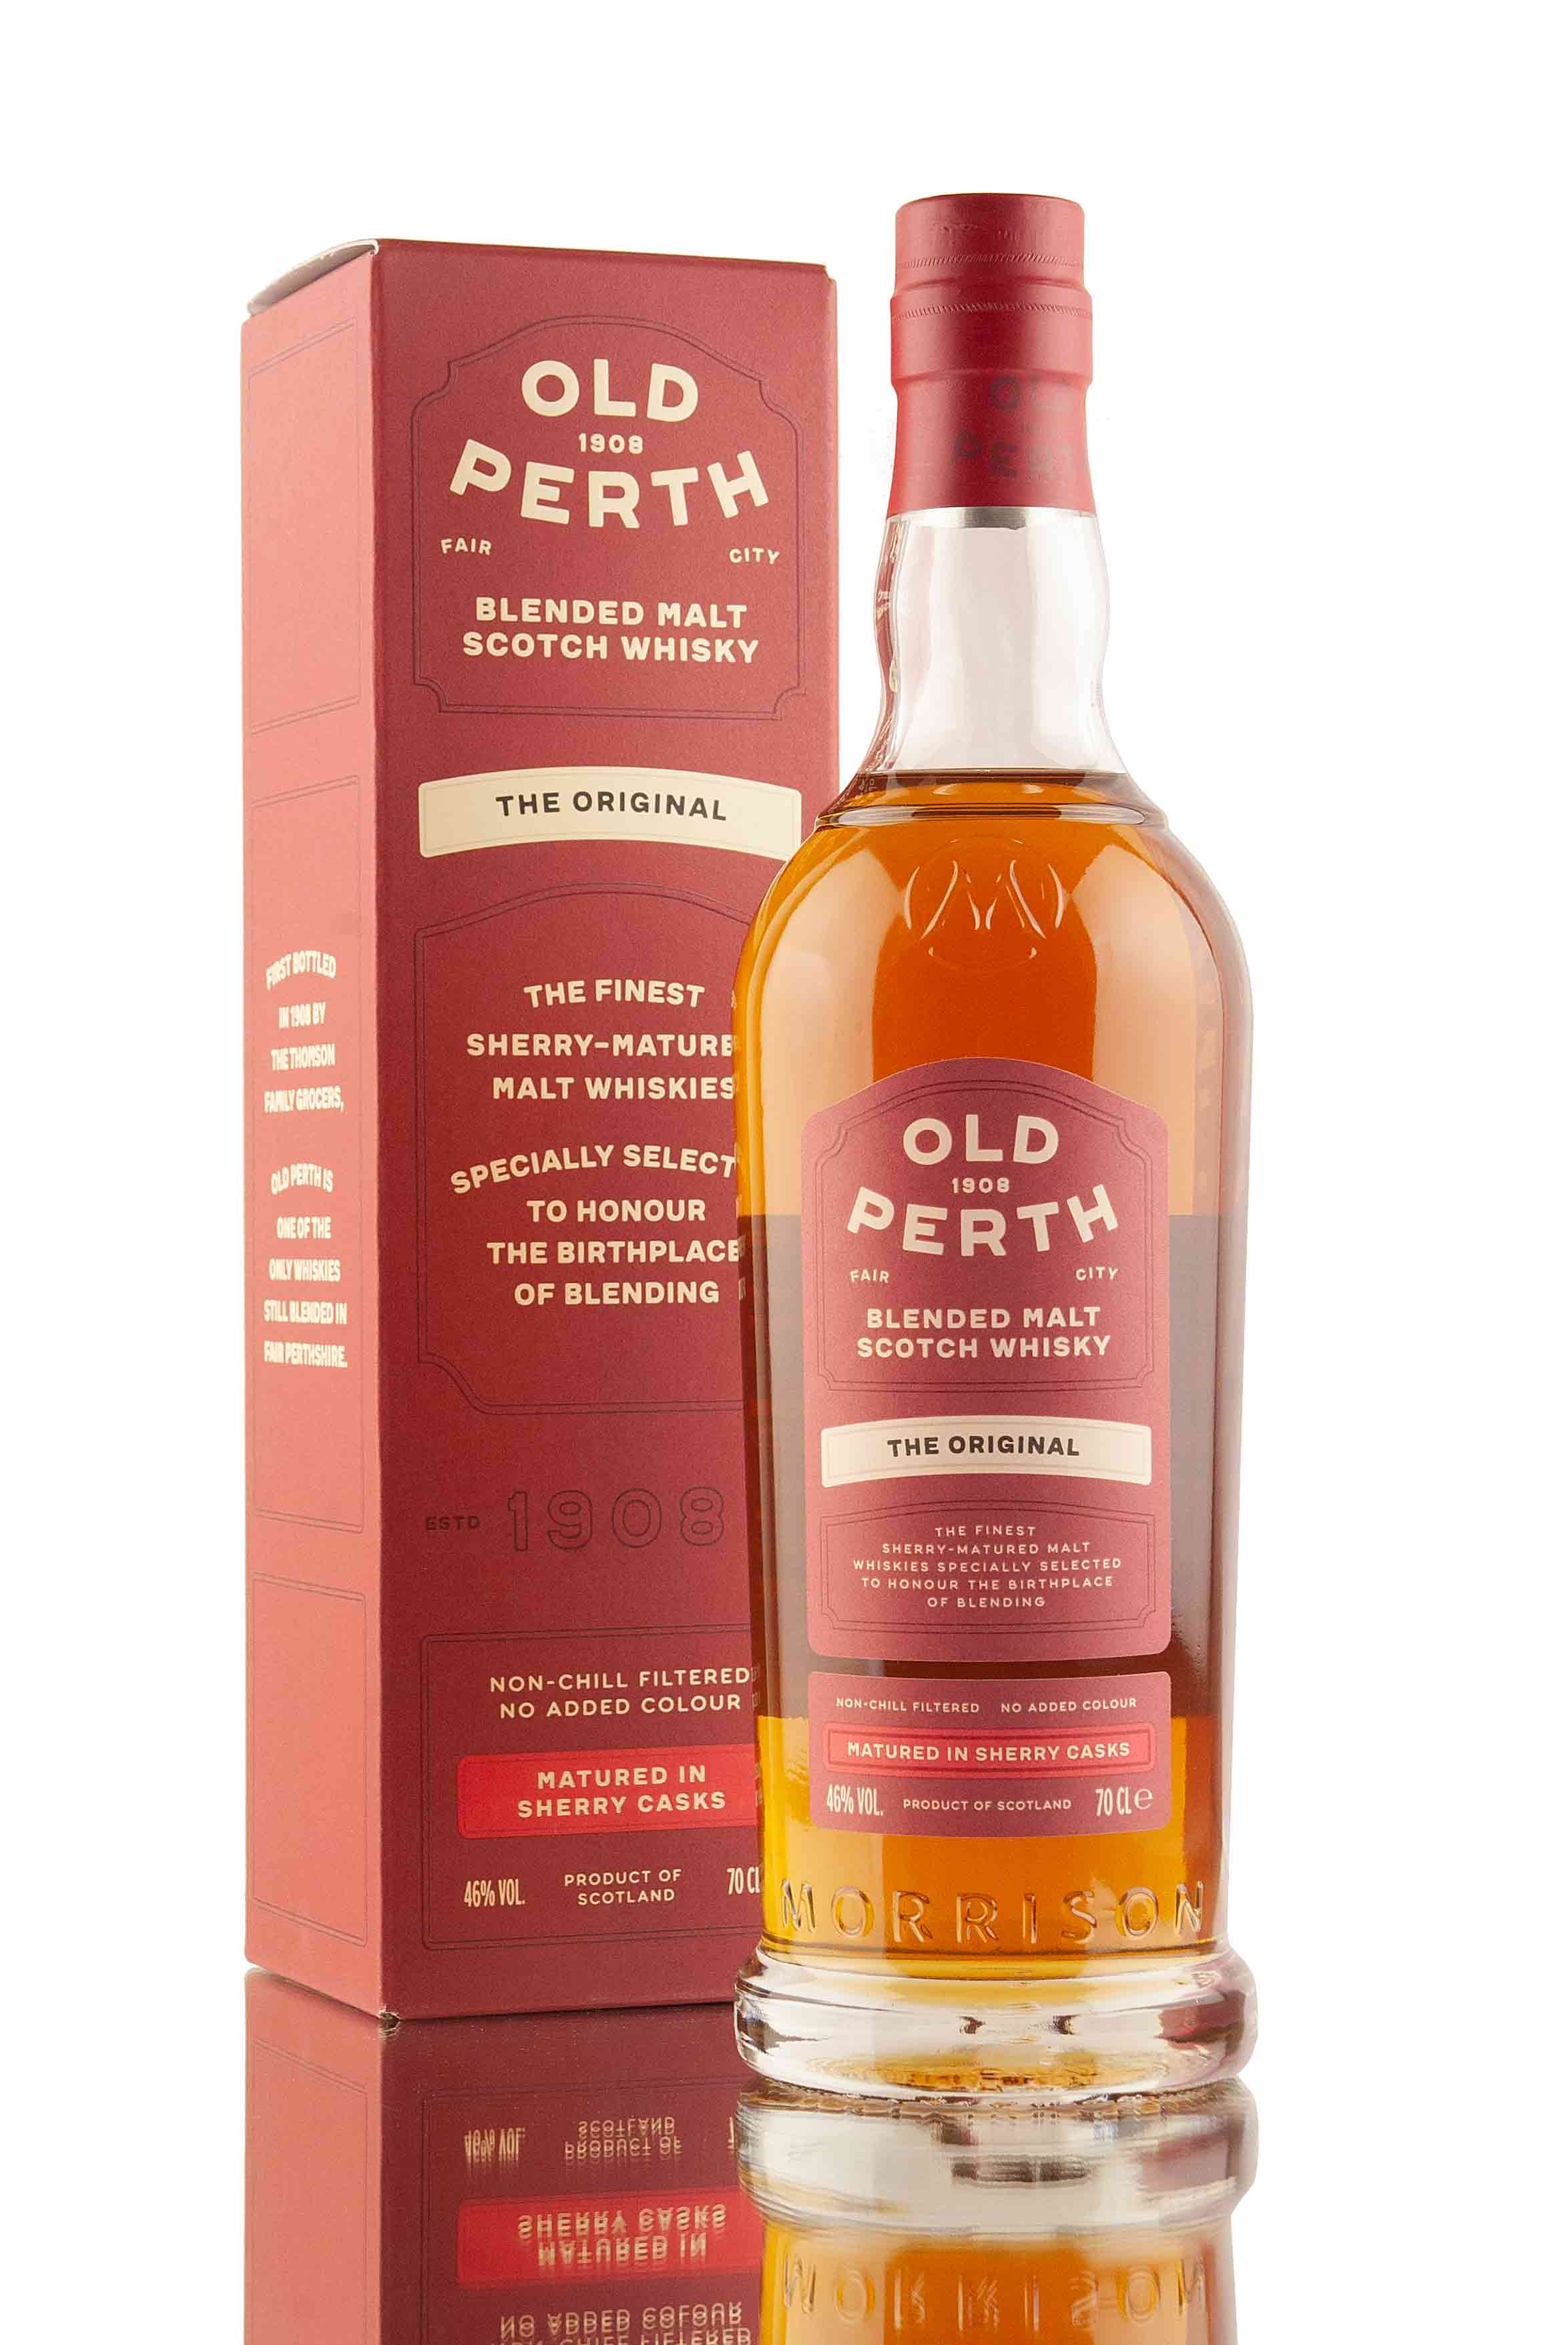 Old Perth The Original Blended Malt Scotch Whisky | Abbey Whisky